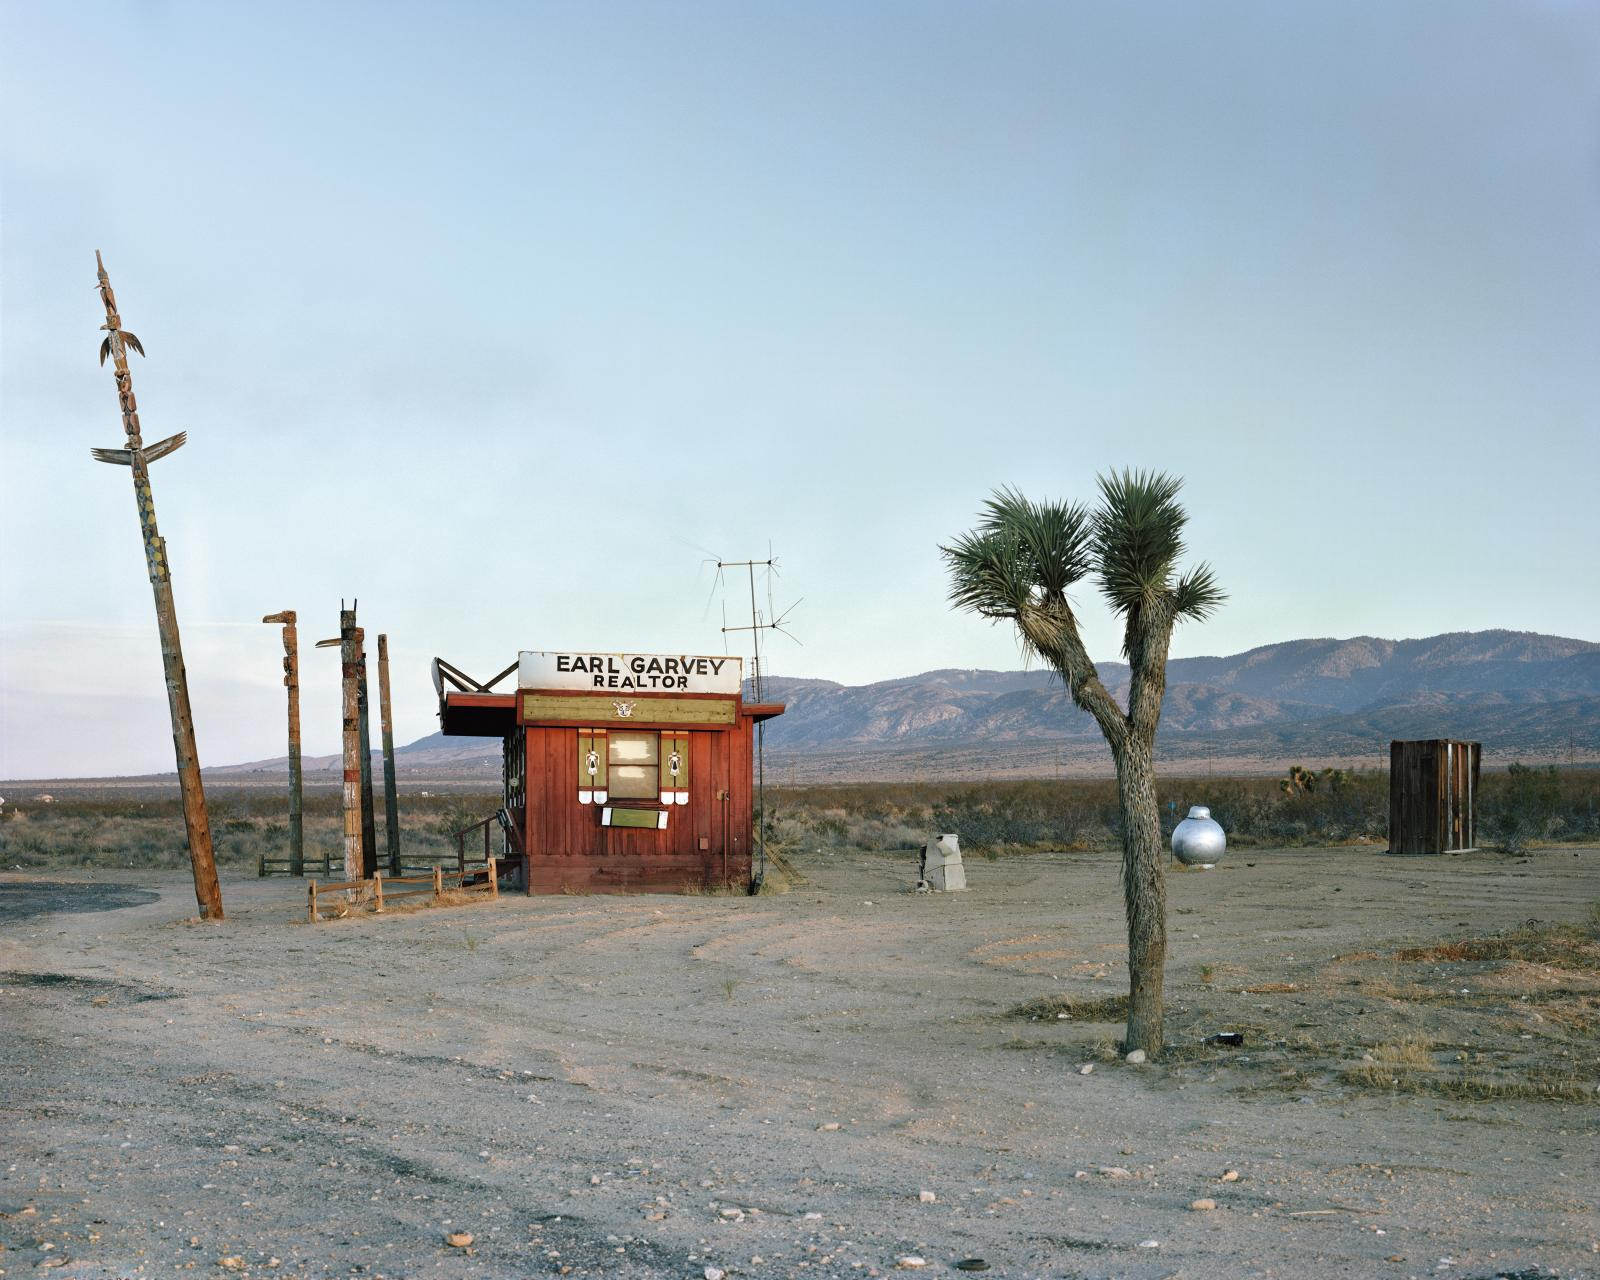 Joel Sternfeld (né en 1944), Earl Garvey Realtor, The Mojave Desert, California, July 1979, tirage C-Print, 106 x 133 cm.